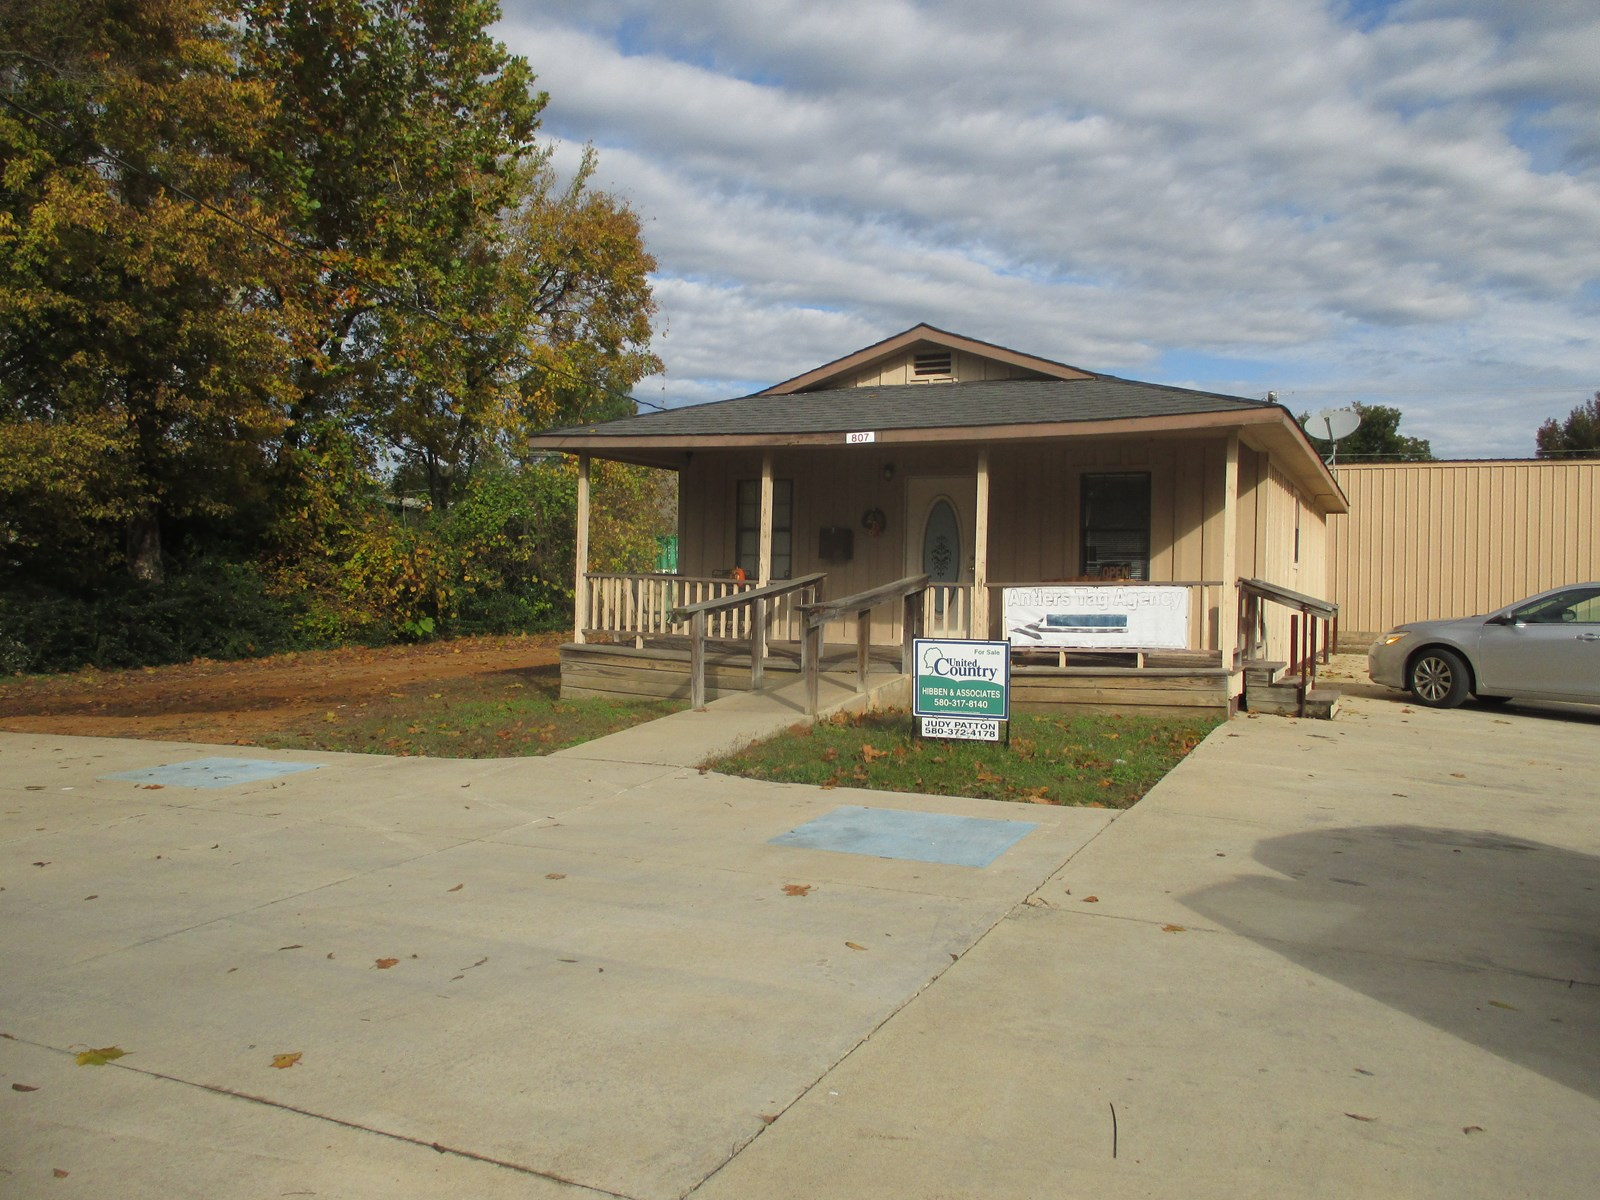 Commercial Building For Sale In Antlers Oklahoma